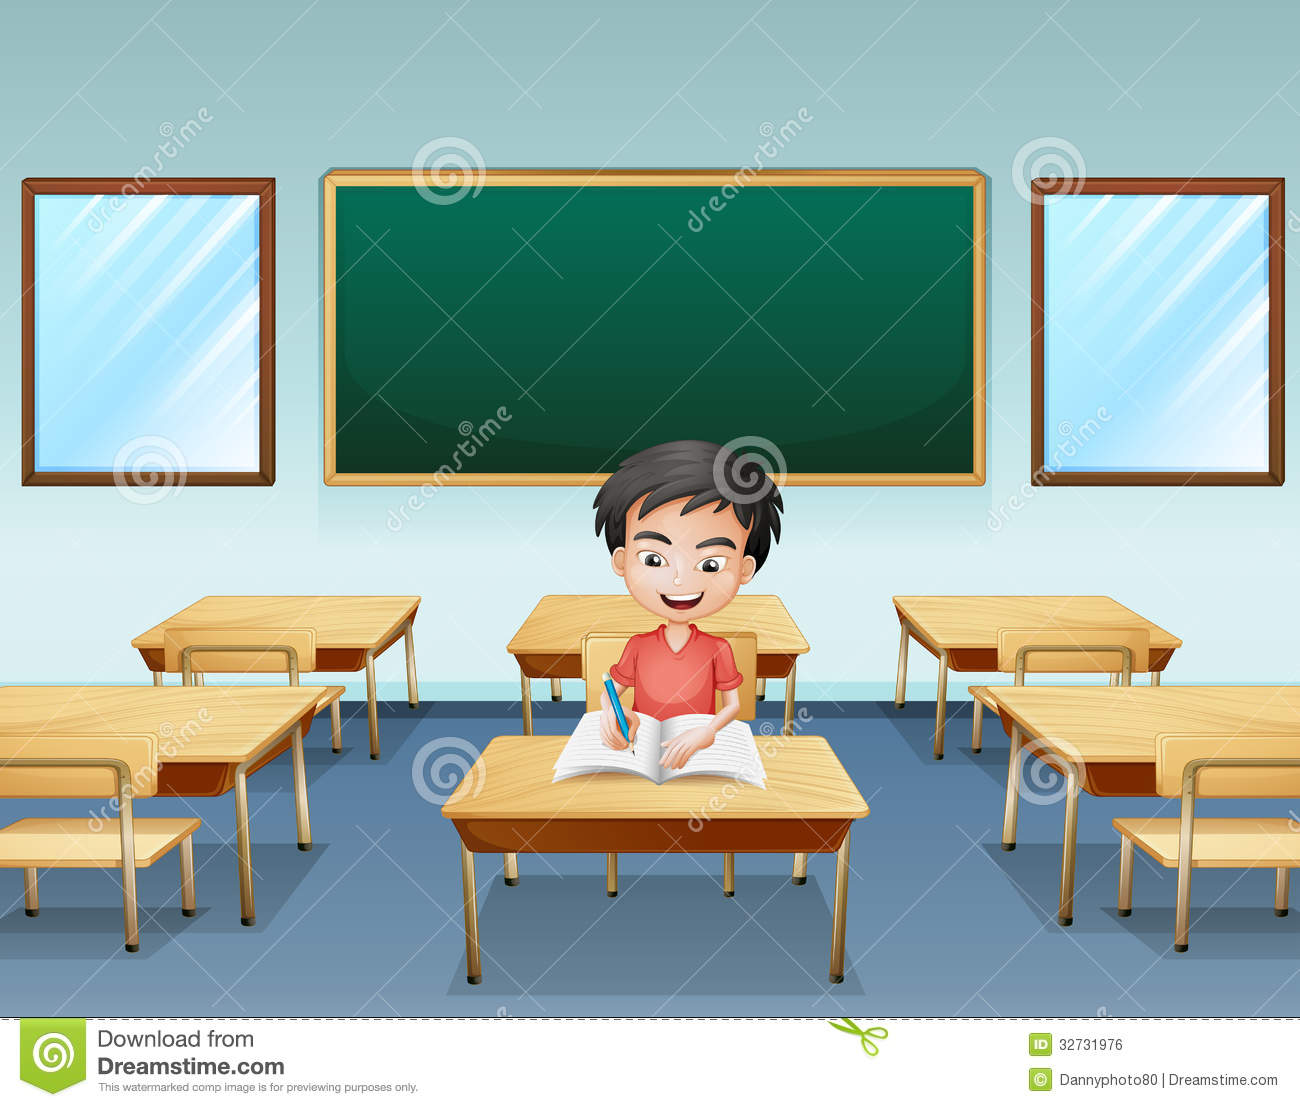 Elementary Classroom Clipart ~ A boy inside classroom with an empty board at the back